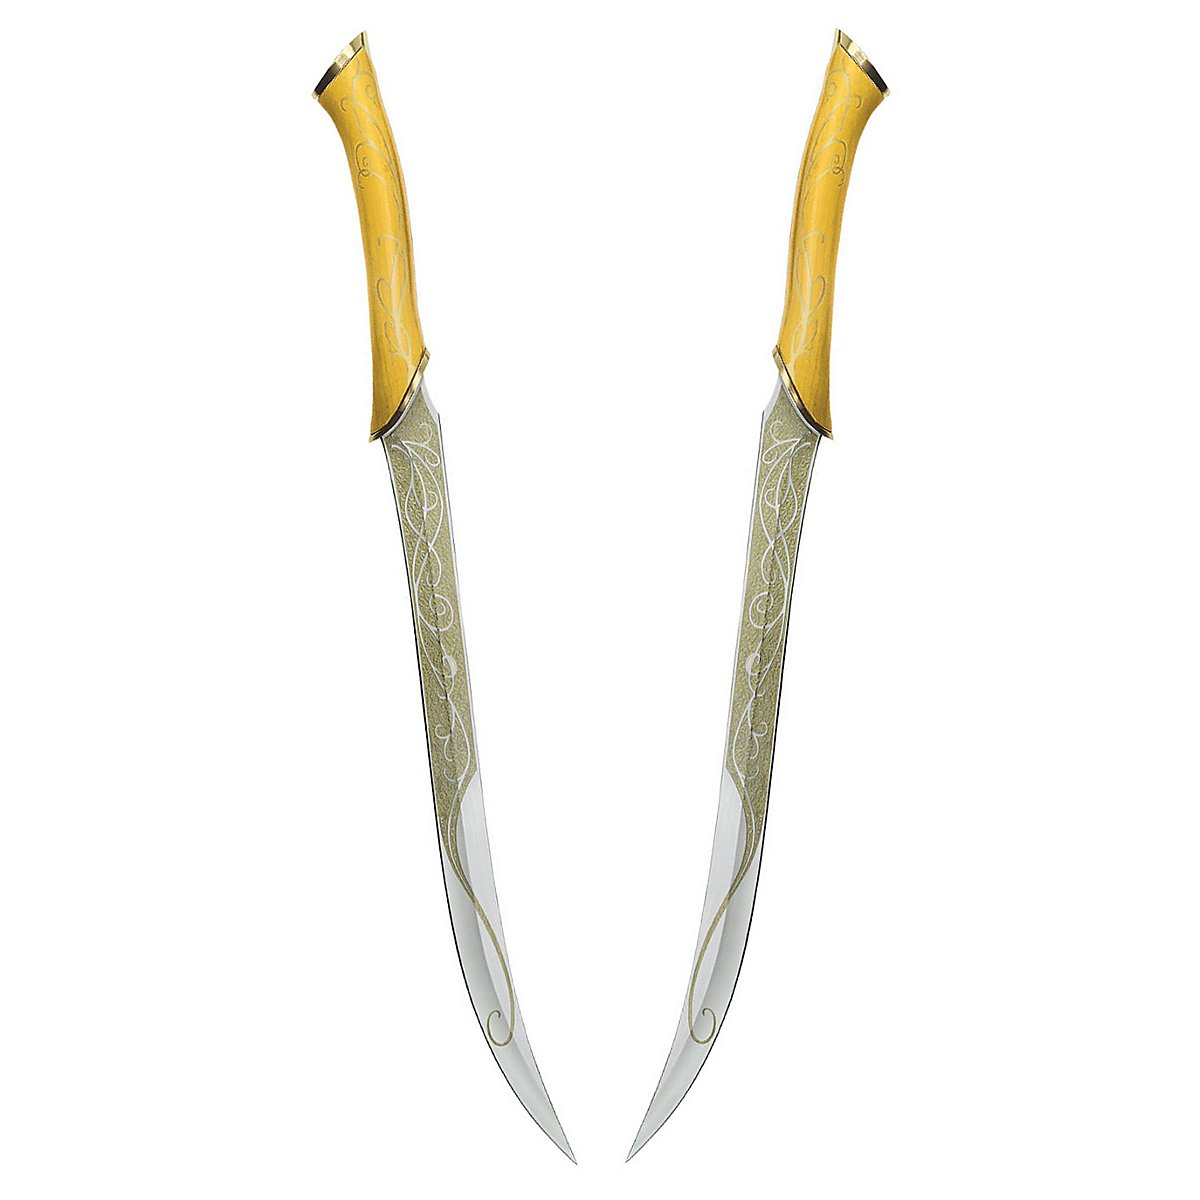 The Lord of the Rings - Legolas' combat knives replicas 1 ...